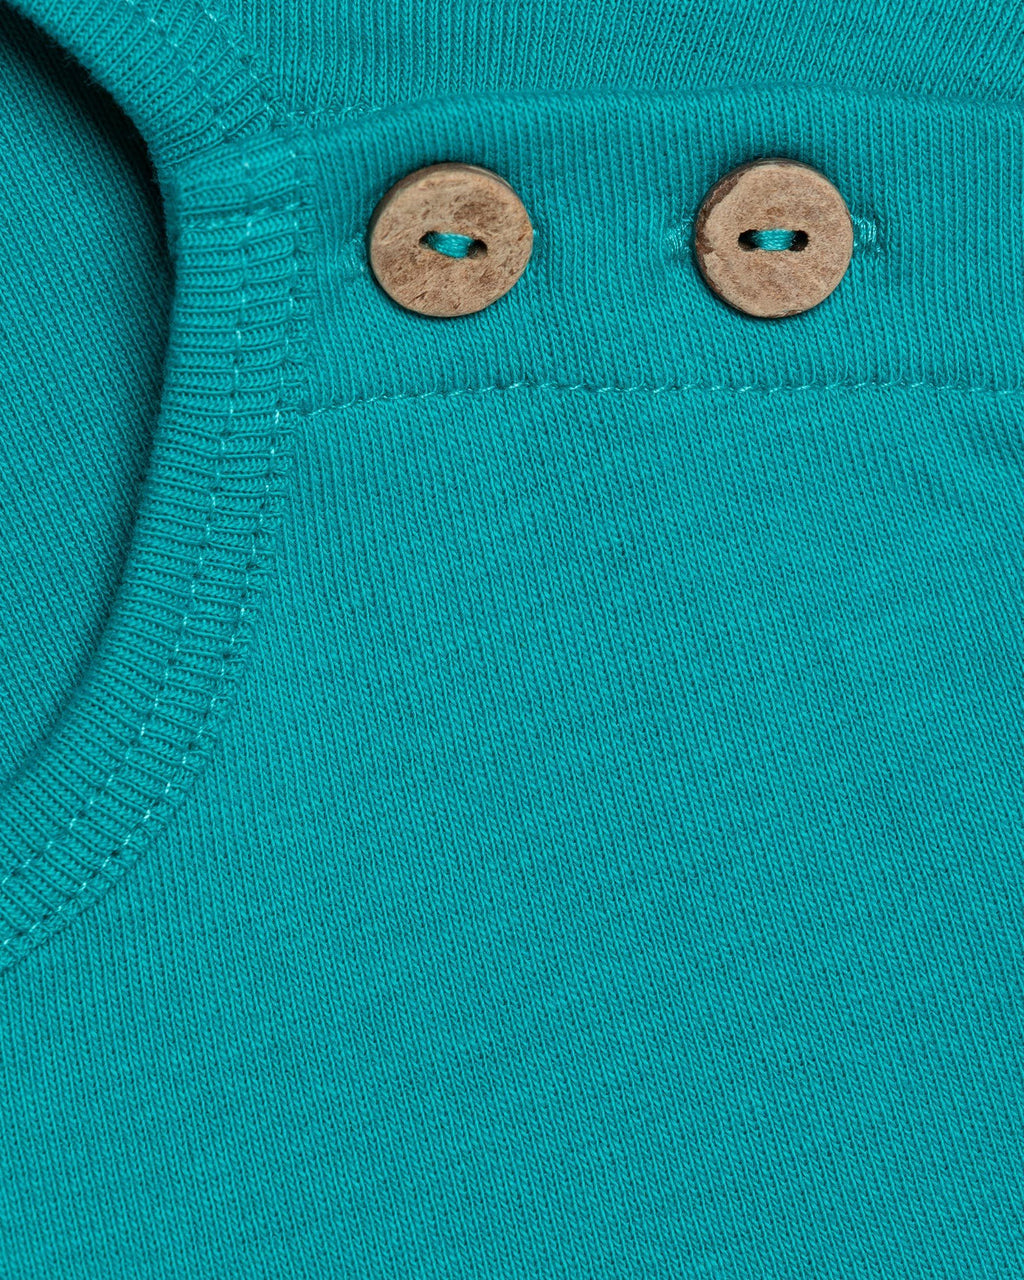 variant_1 | EN Organic Green basic longsleeve sweater with buttons on shoulder for babies | DE Bio Grüner langarmliger sweater für babies  mit Knöpfen auf der Shulter